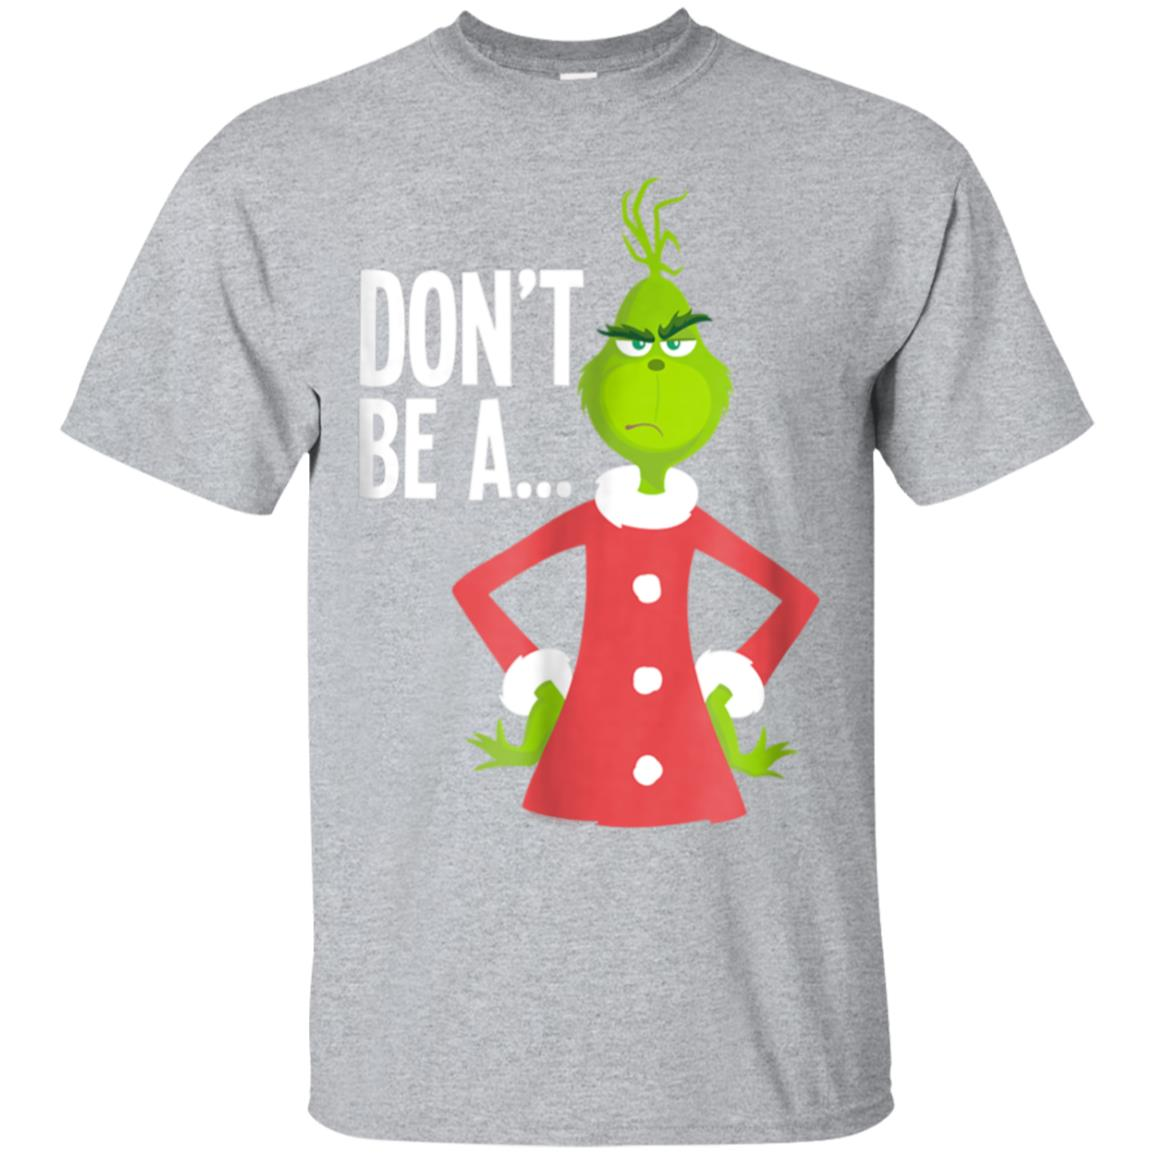 Dr. Seuss The Grinch Dont Be T-shirt 99promocode